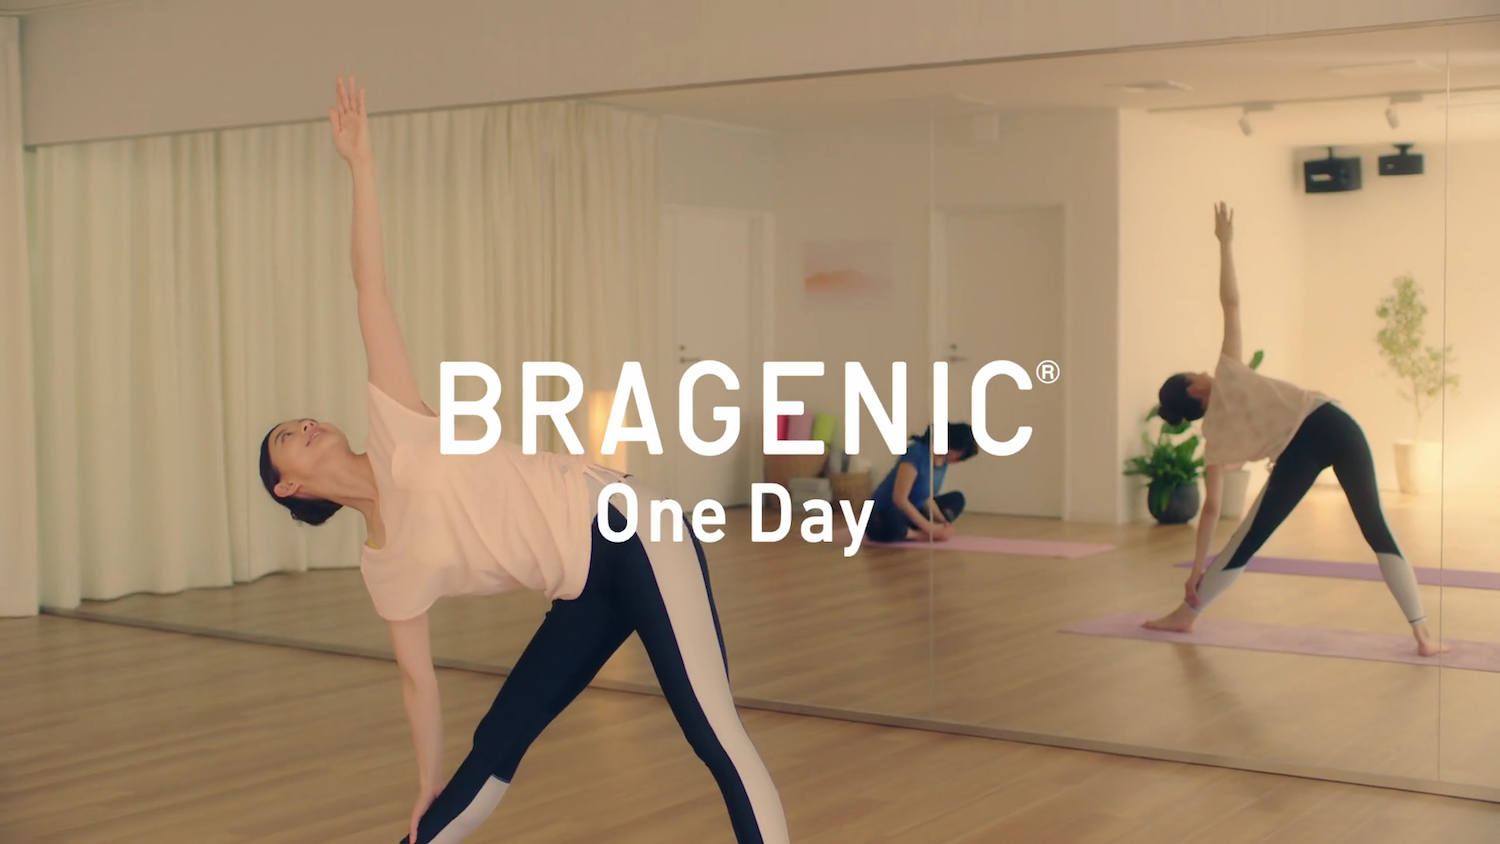 朝比奈彩/BRAGENIC One Day WEB Movieより